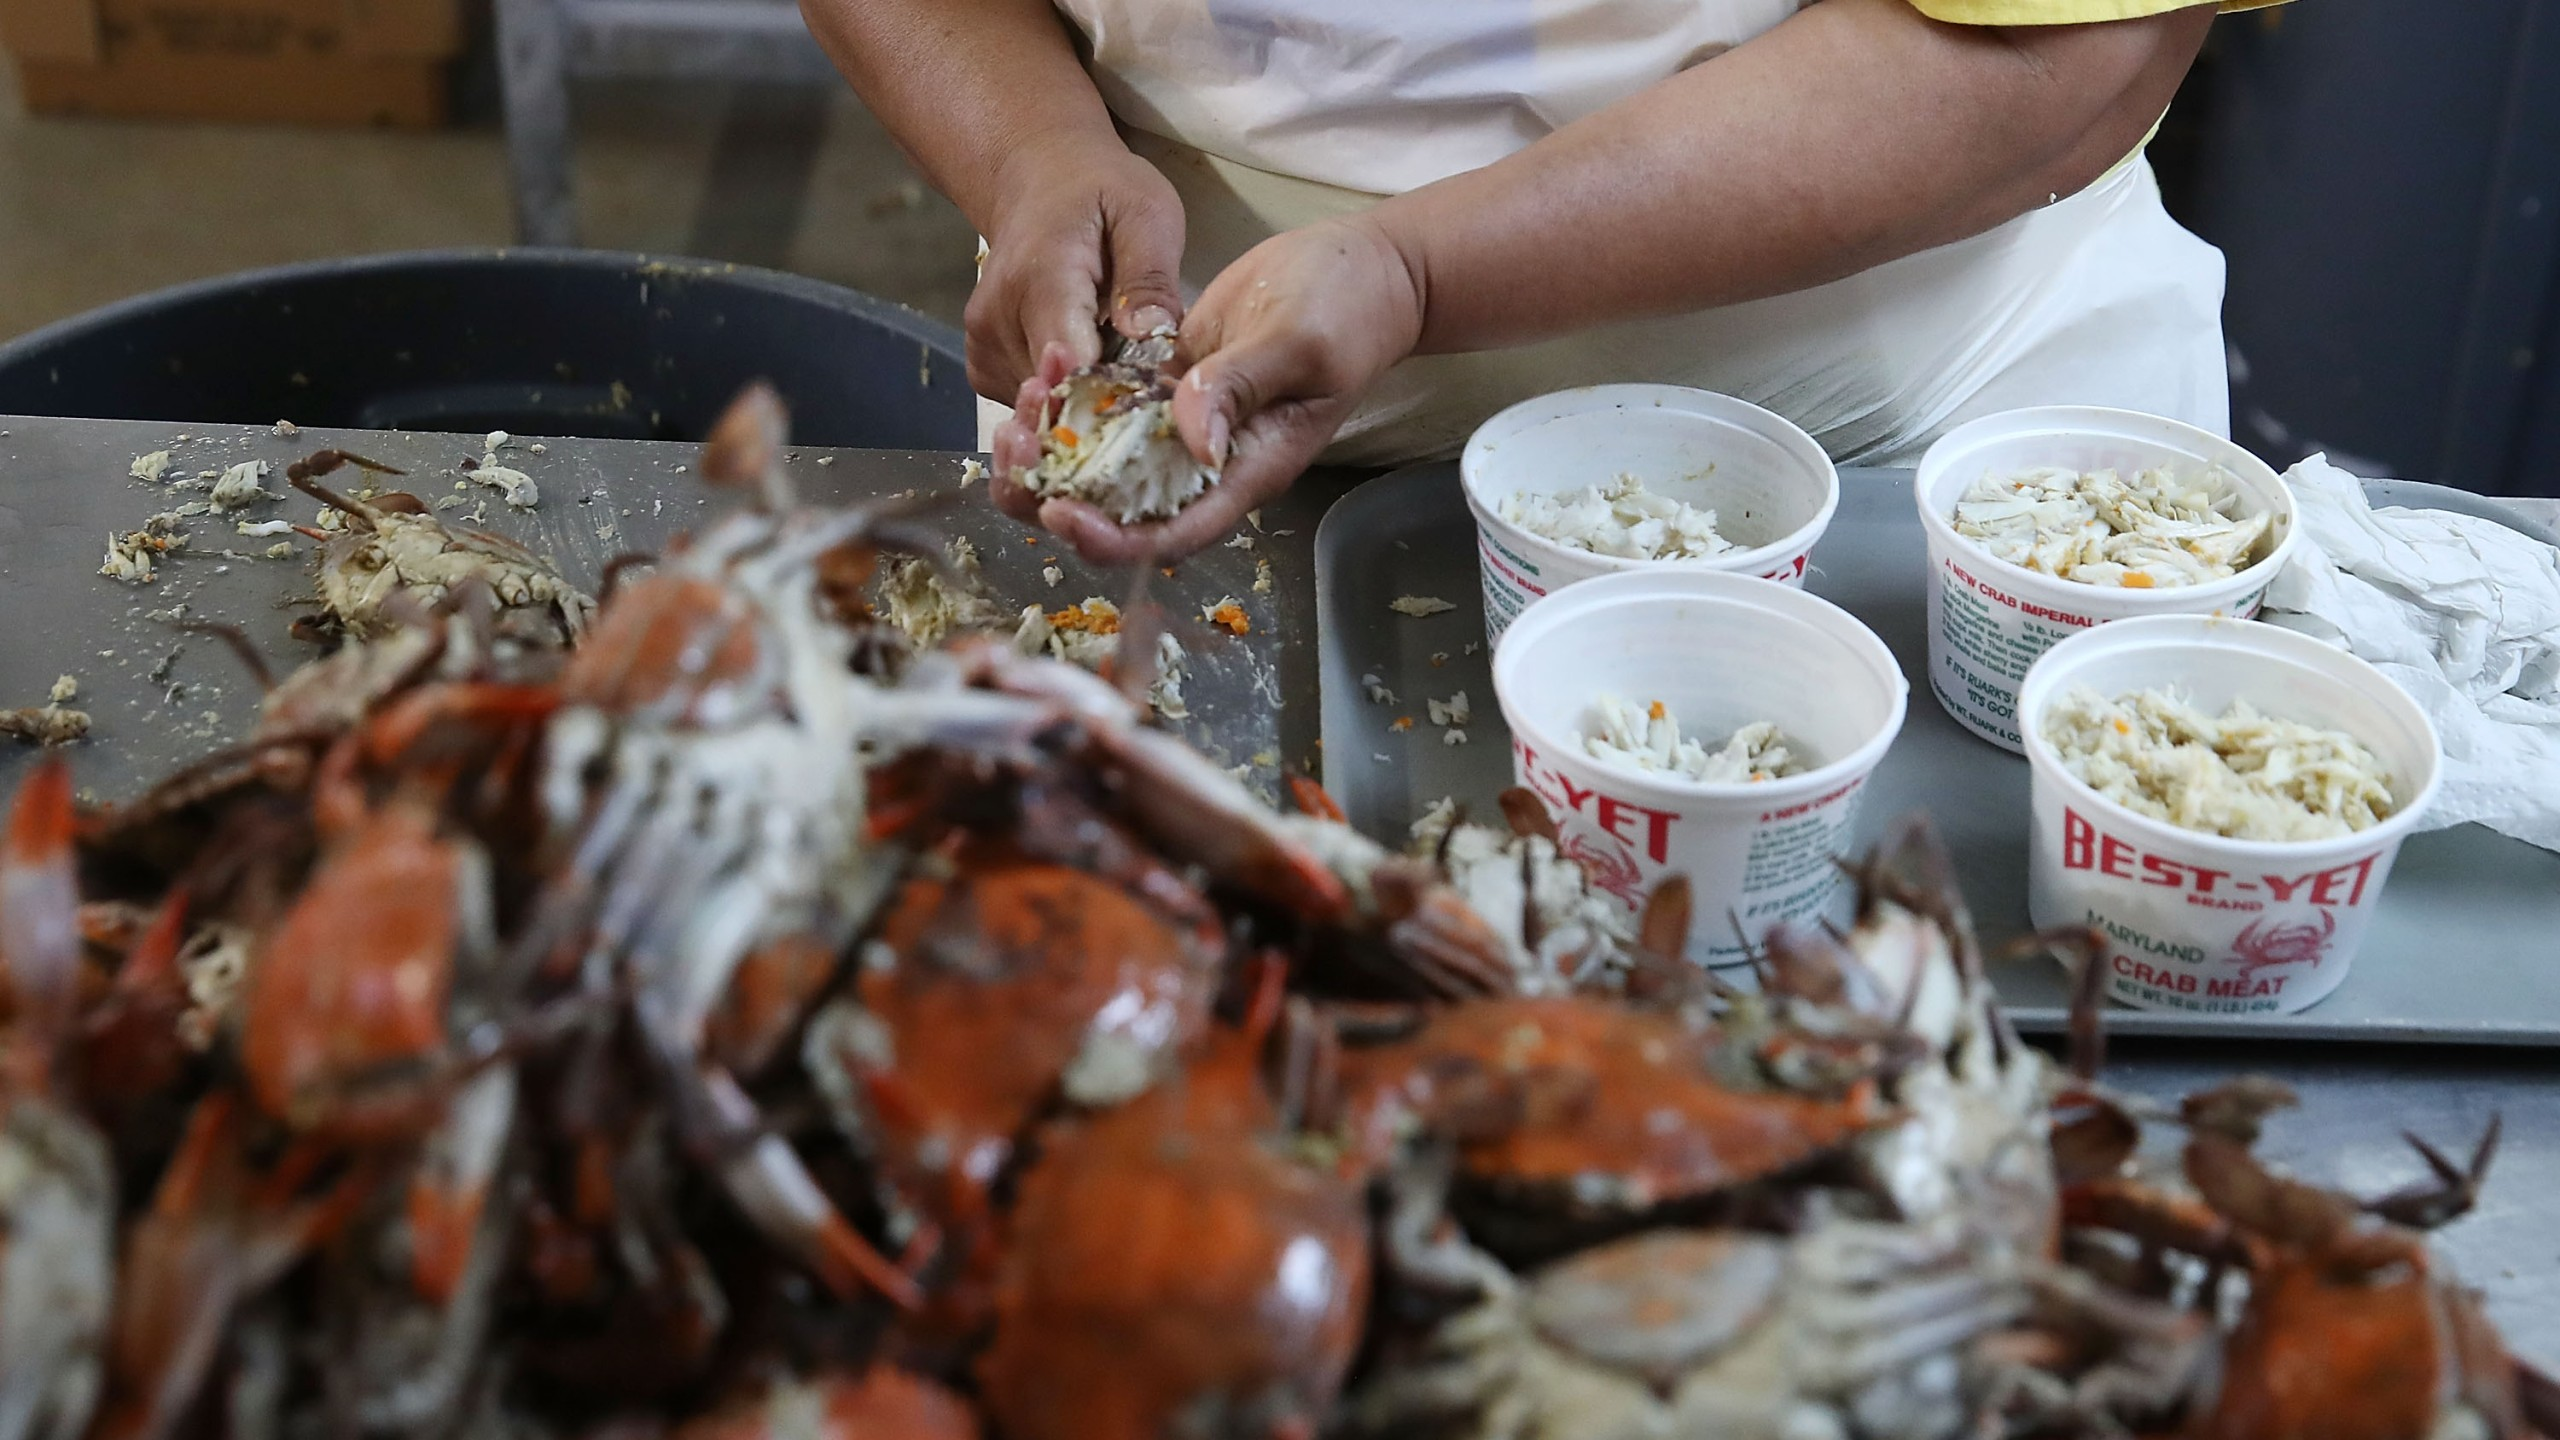 A woman picks crabs at the W.T. Ruark Seafood Co. in Hoopers Island, Maryland, on May 17, 2018. Due to a new lottery system, several seafood companies failed to get temporary H-2B visas for their mostly Mexican workforce in 2018. (Credit: Mark Wilson / Getty Images)